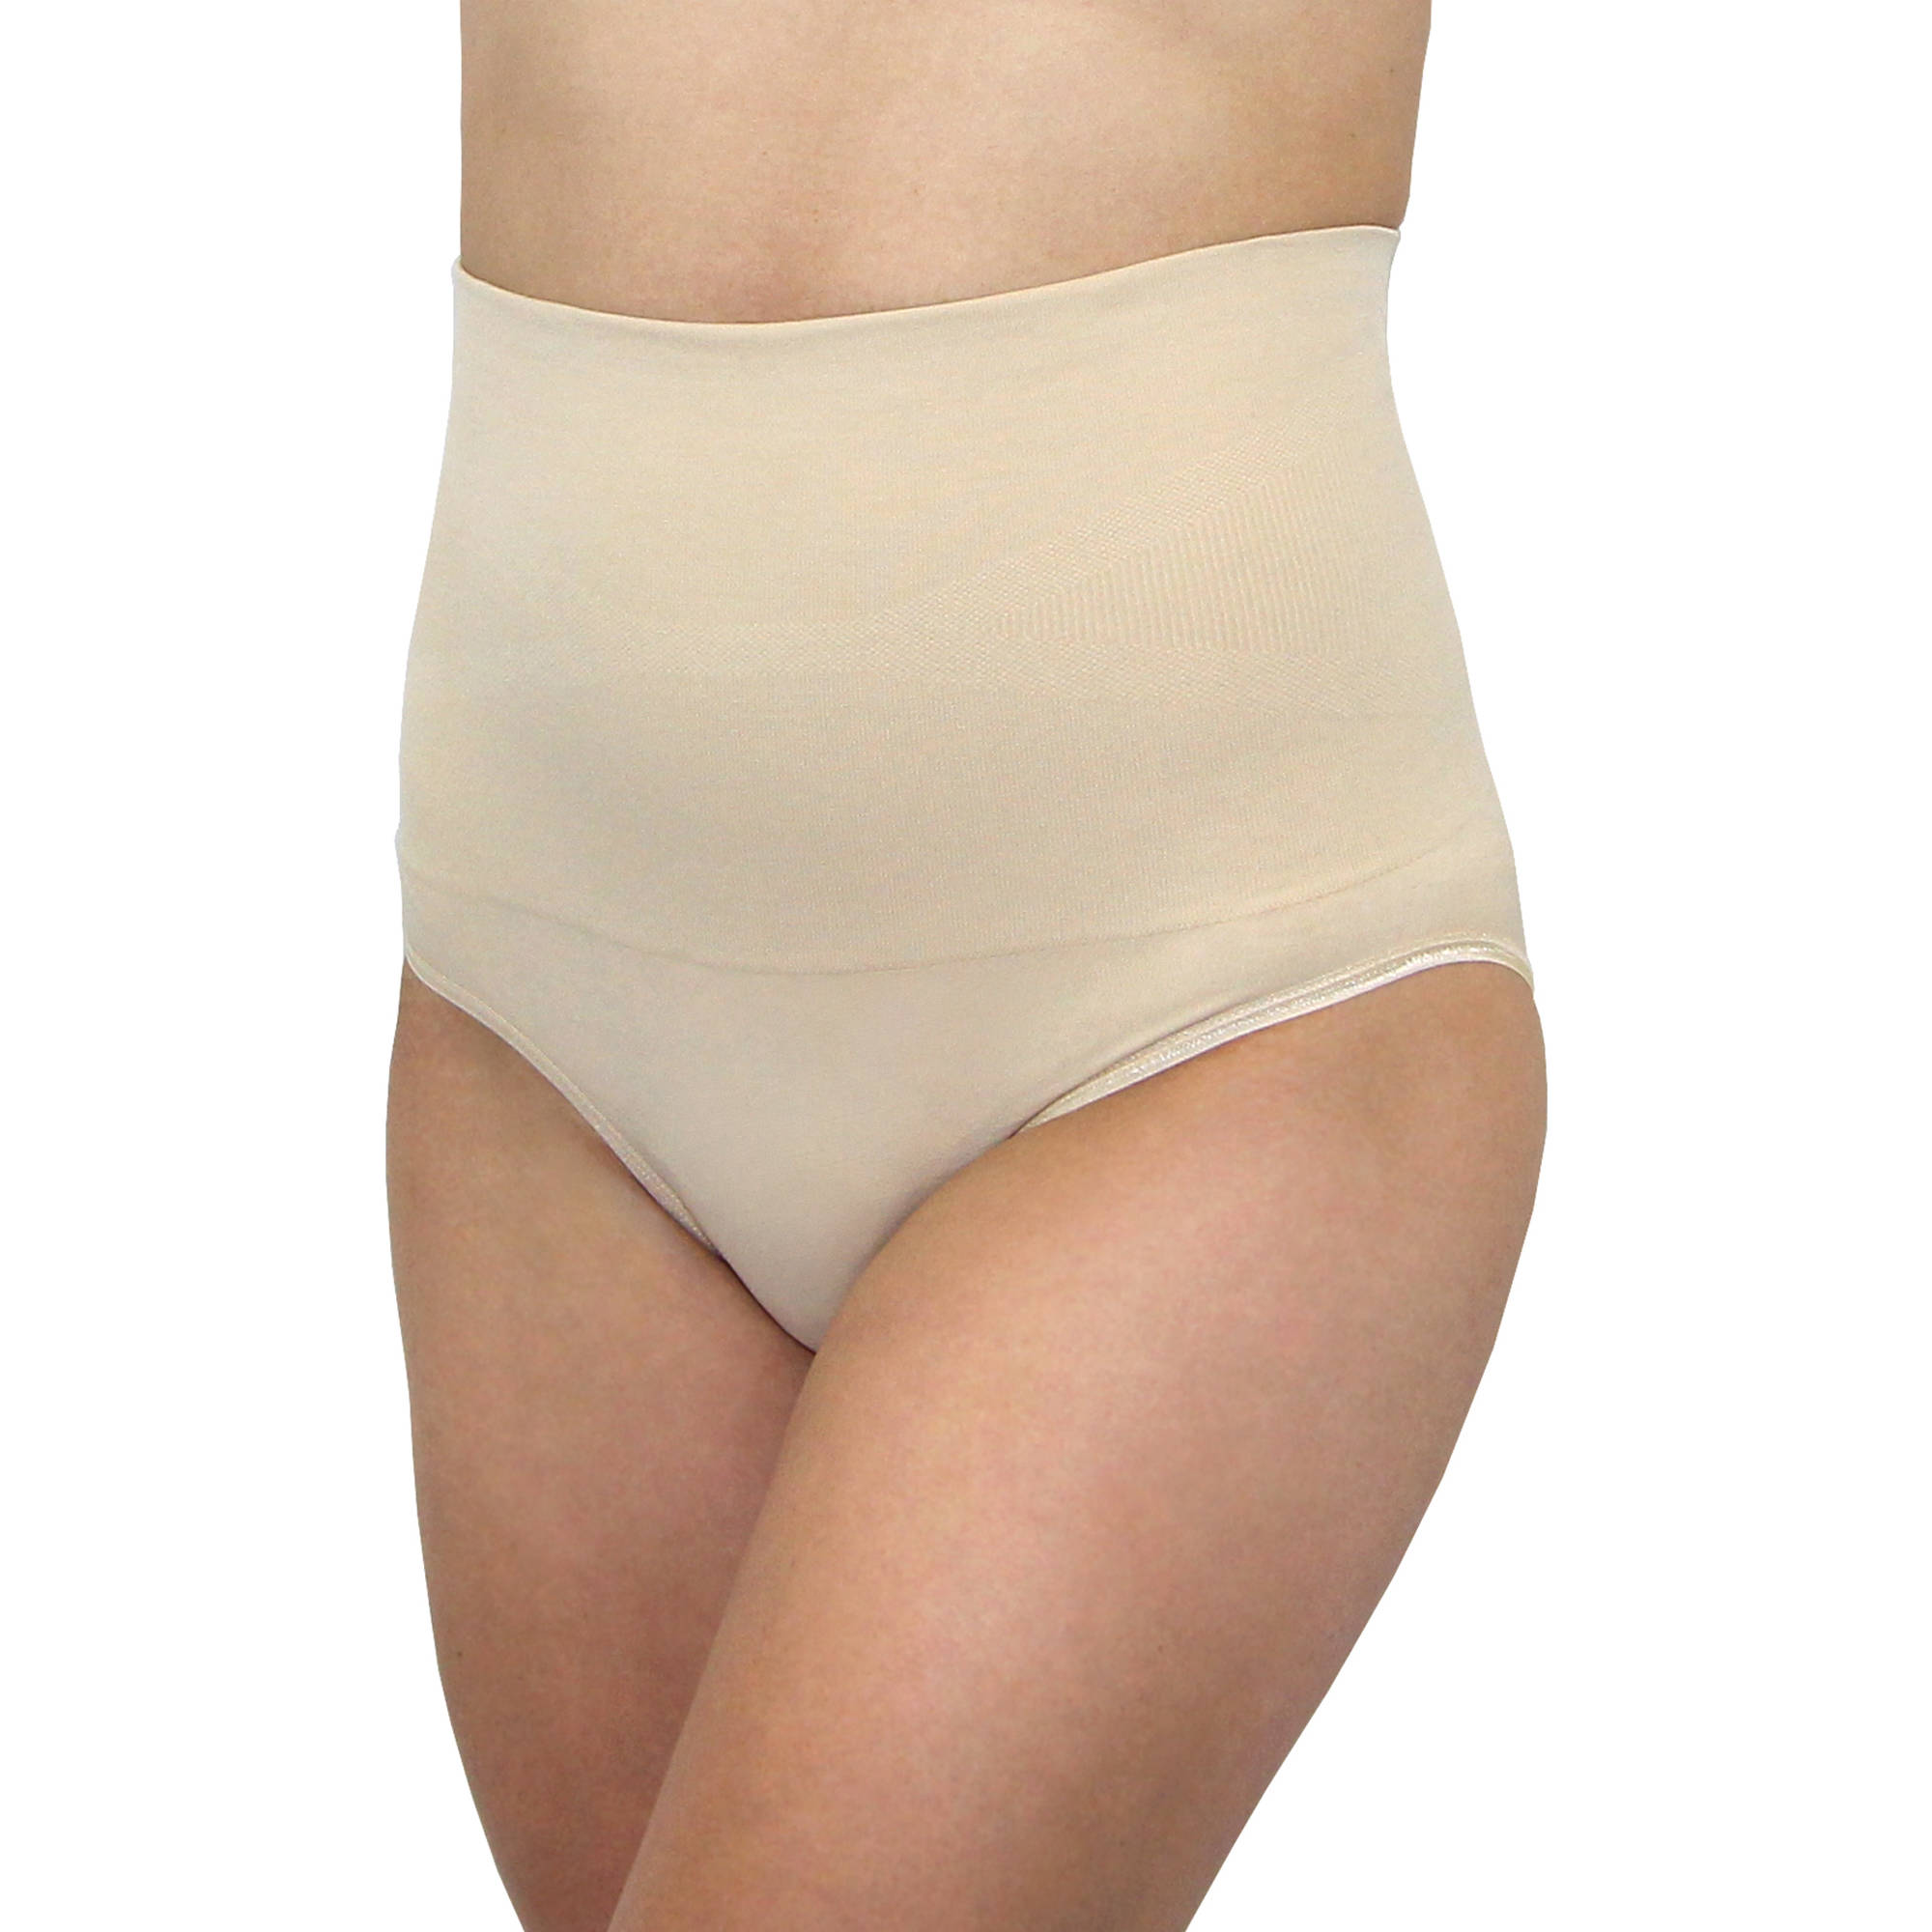 Loving Moments by Leading Lady Postpartum Shaping Briefs